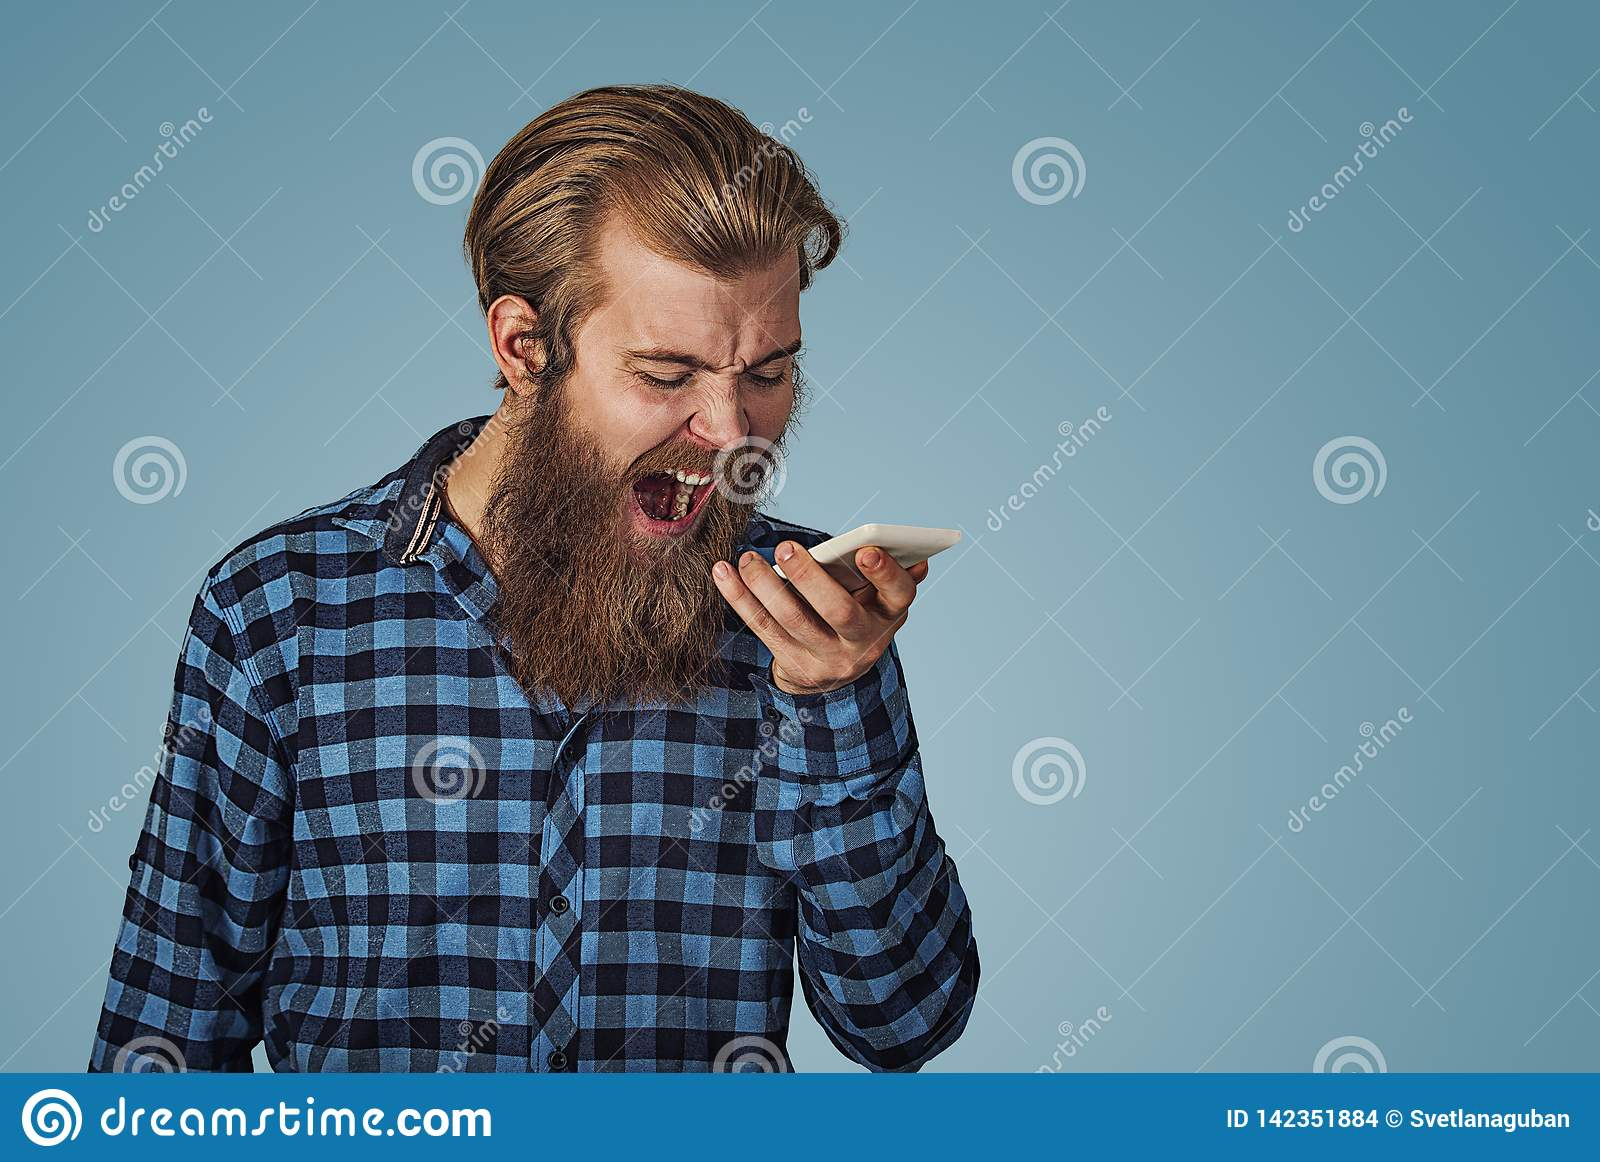 Angry young man screaming on mobile phone